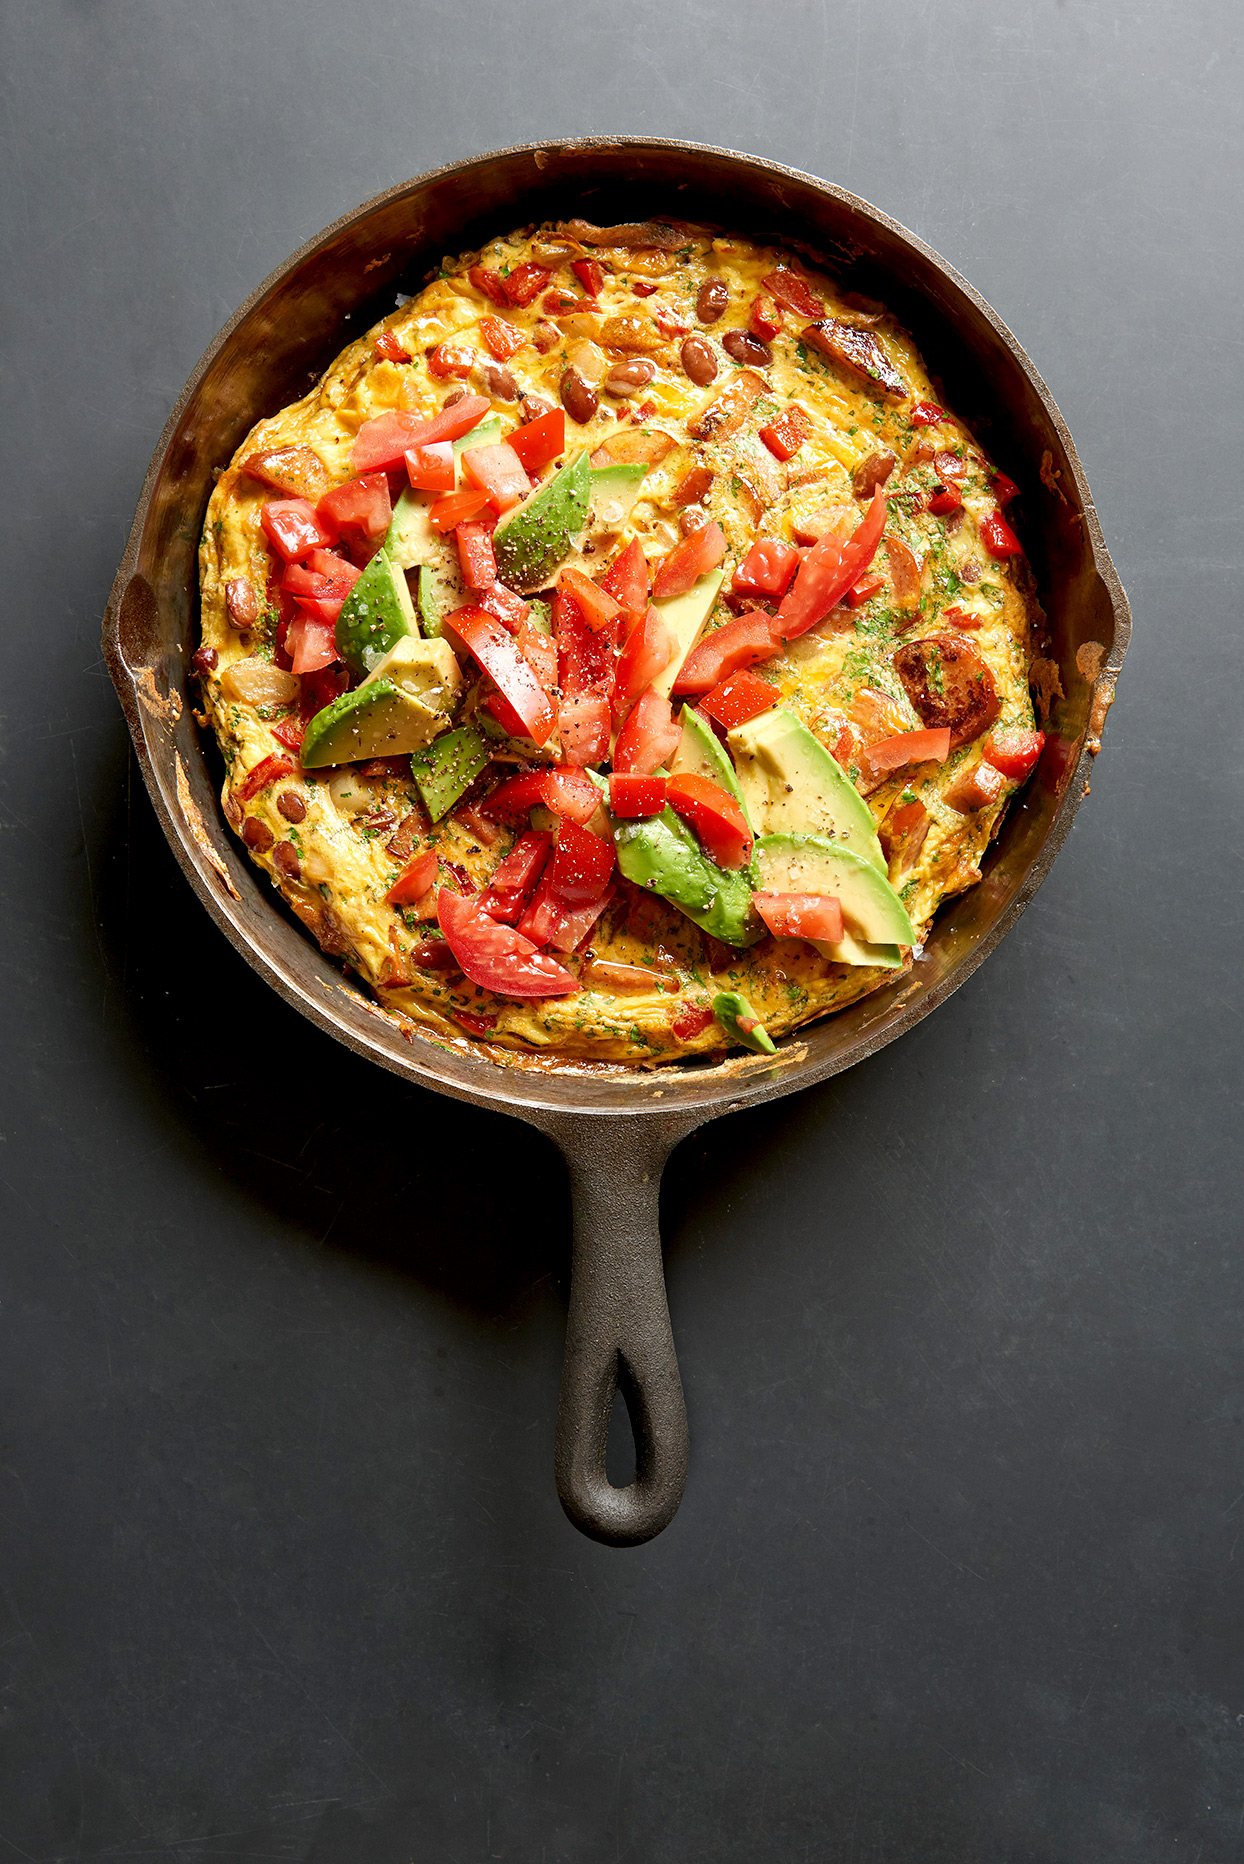 Southwestern Bean and Andouille Frittata